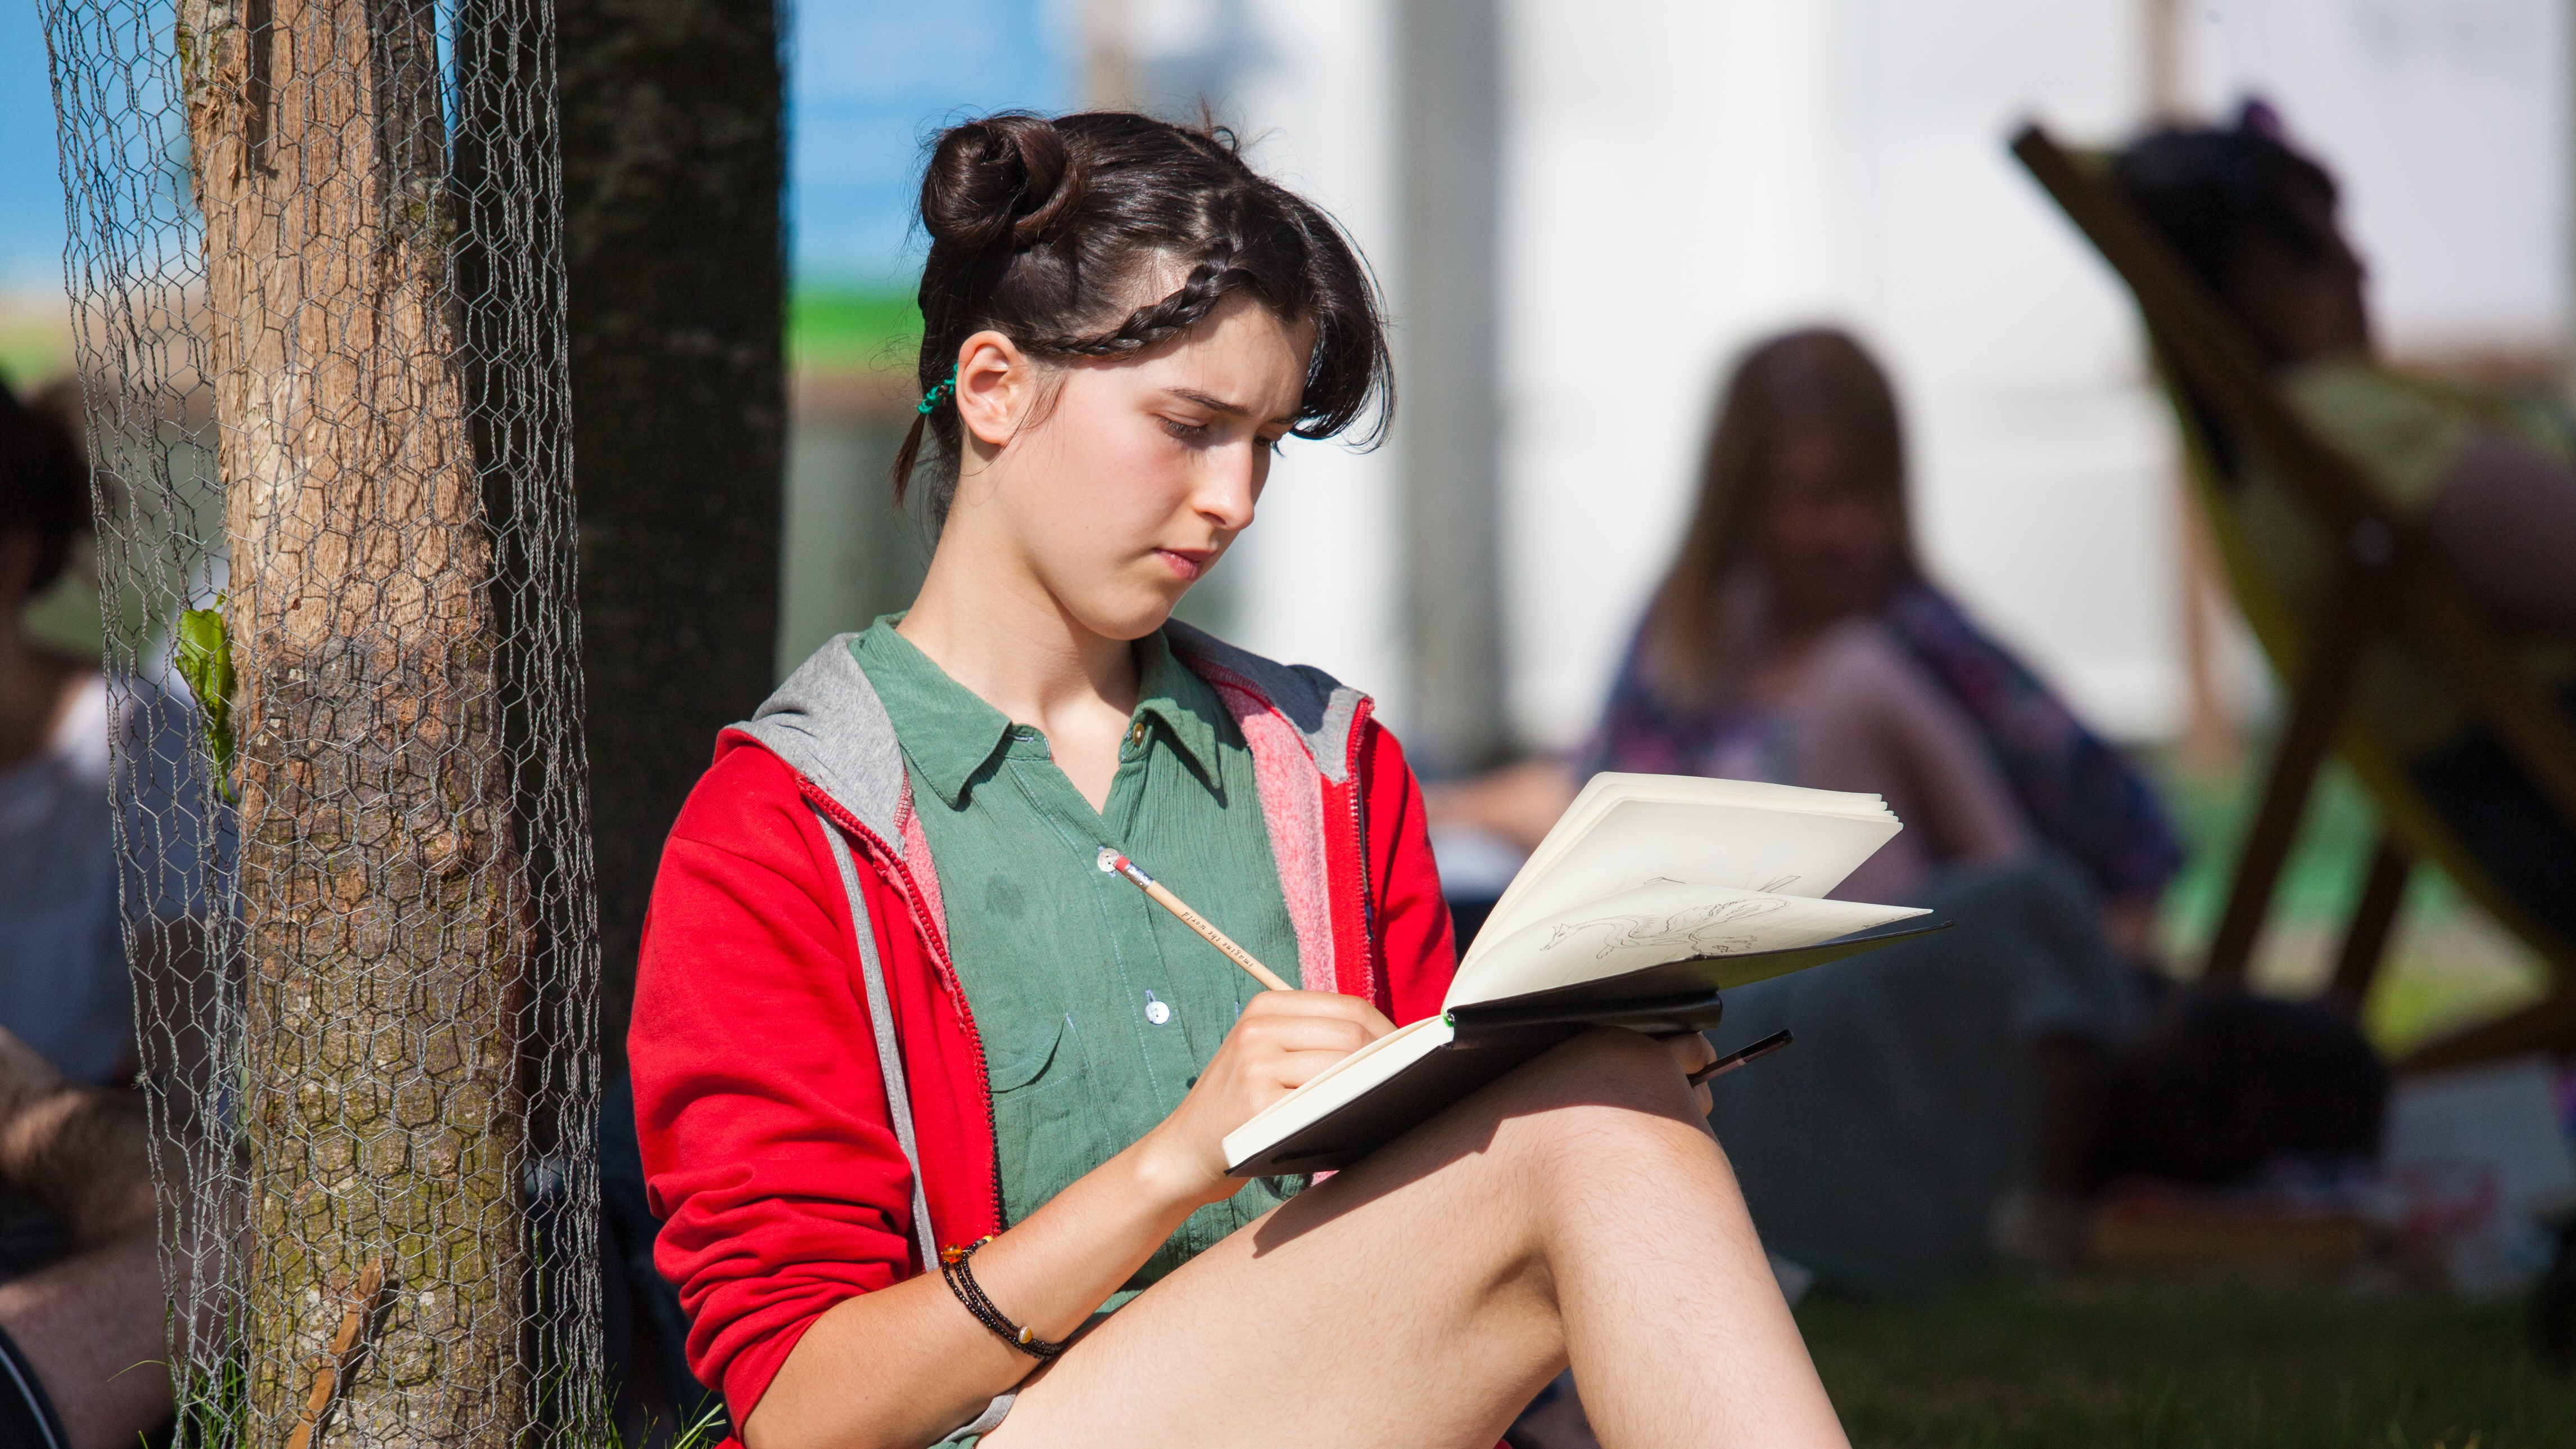 Student sketching at Hay Festival